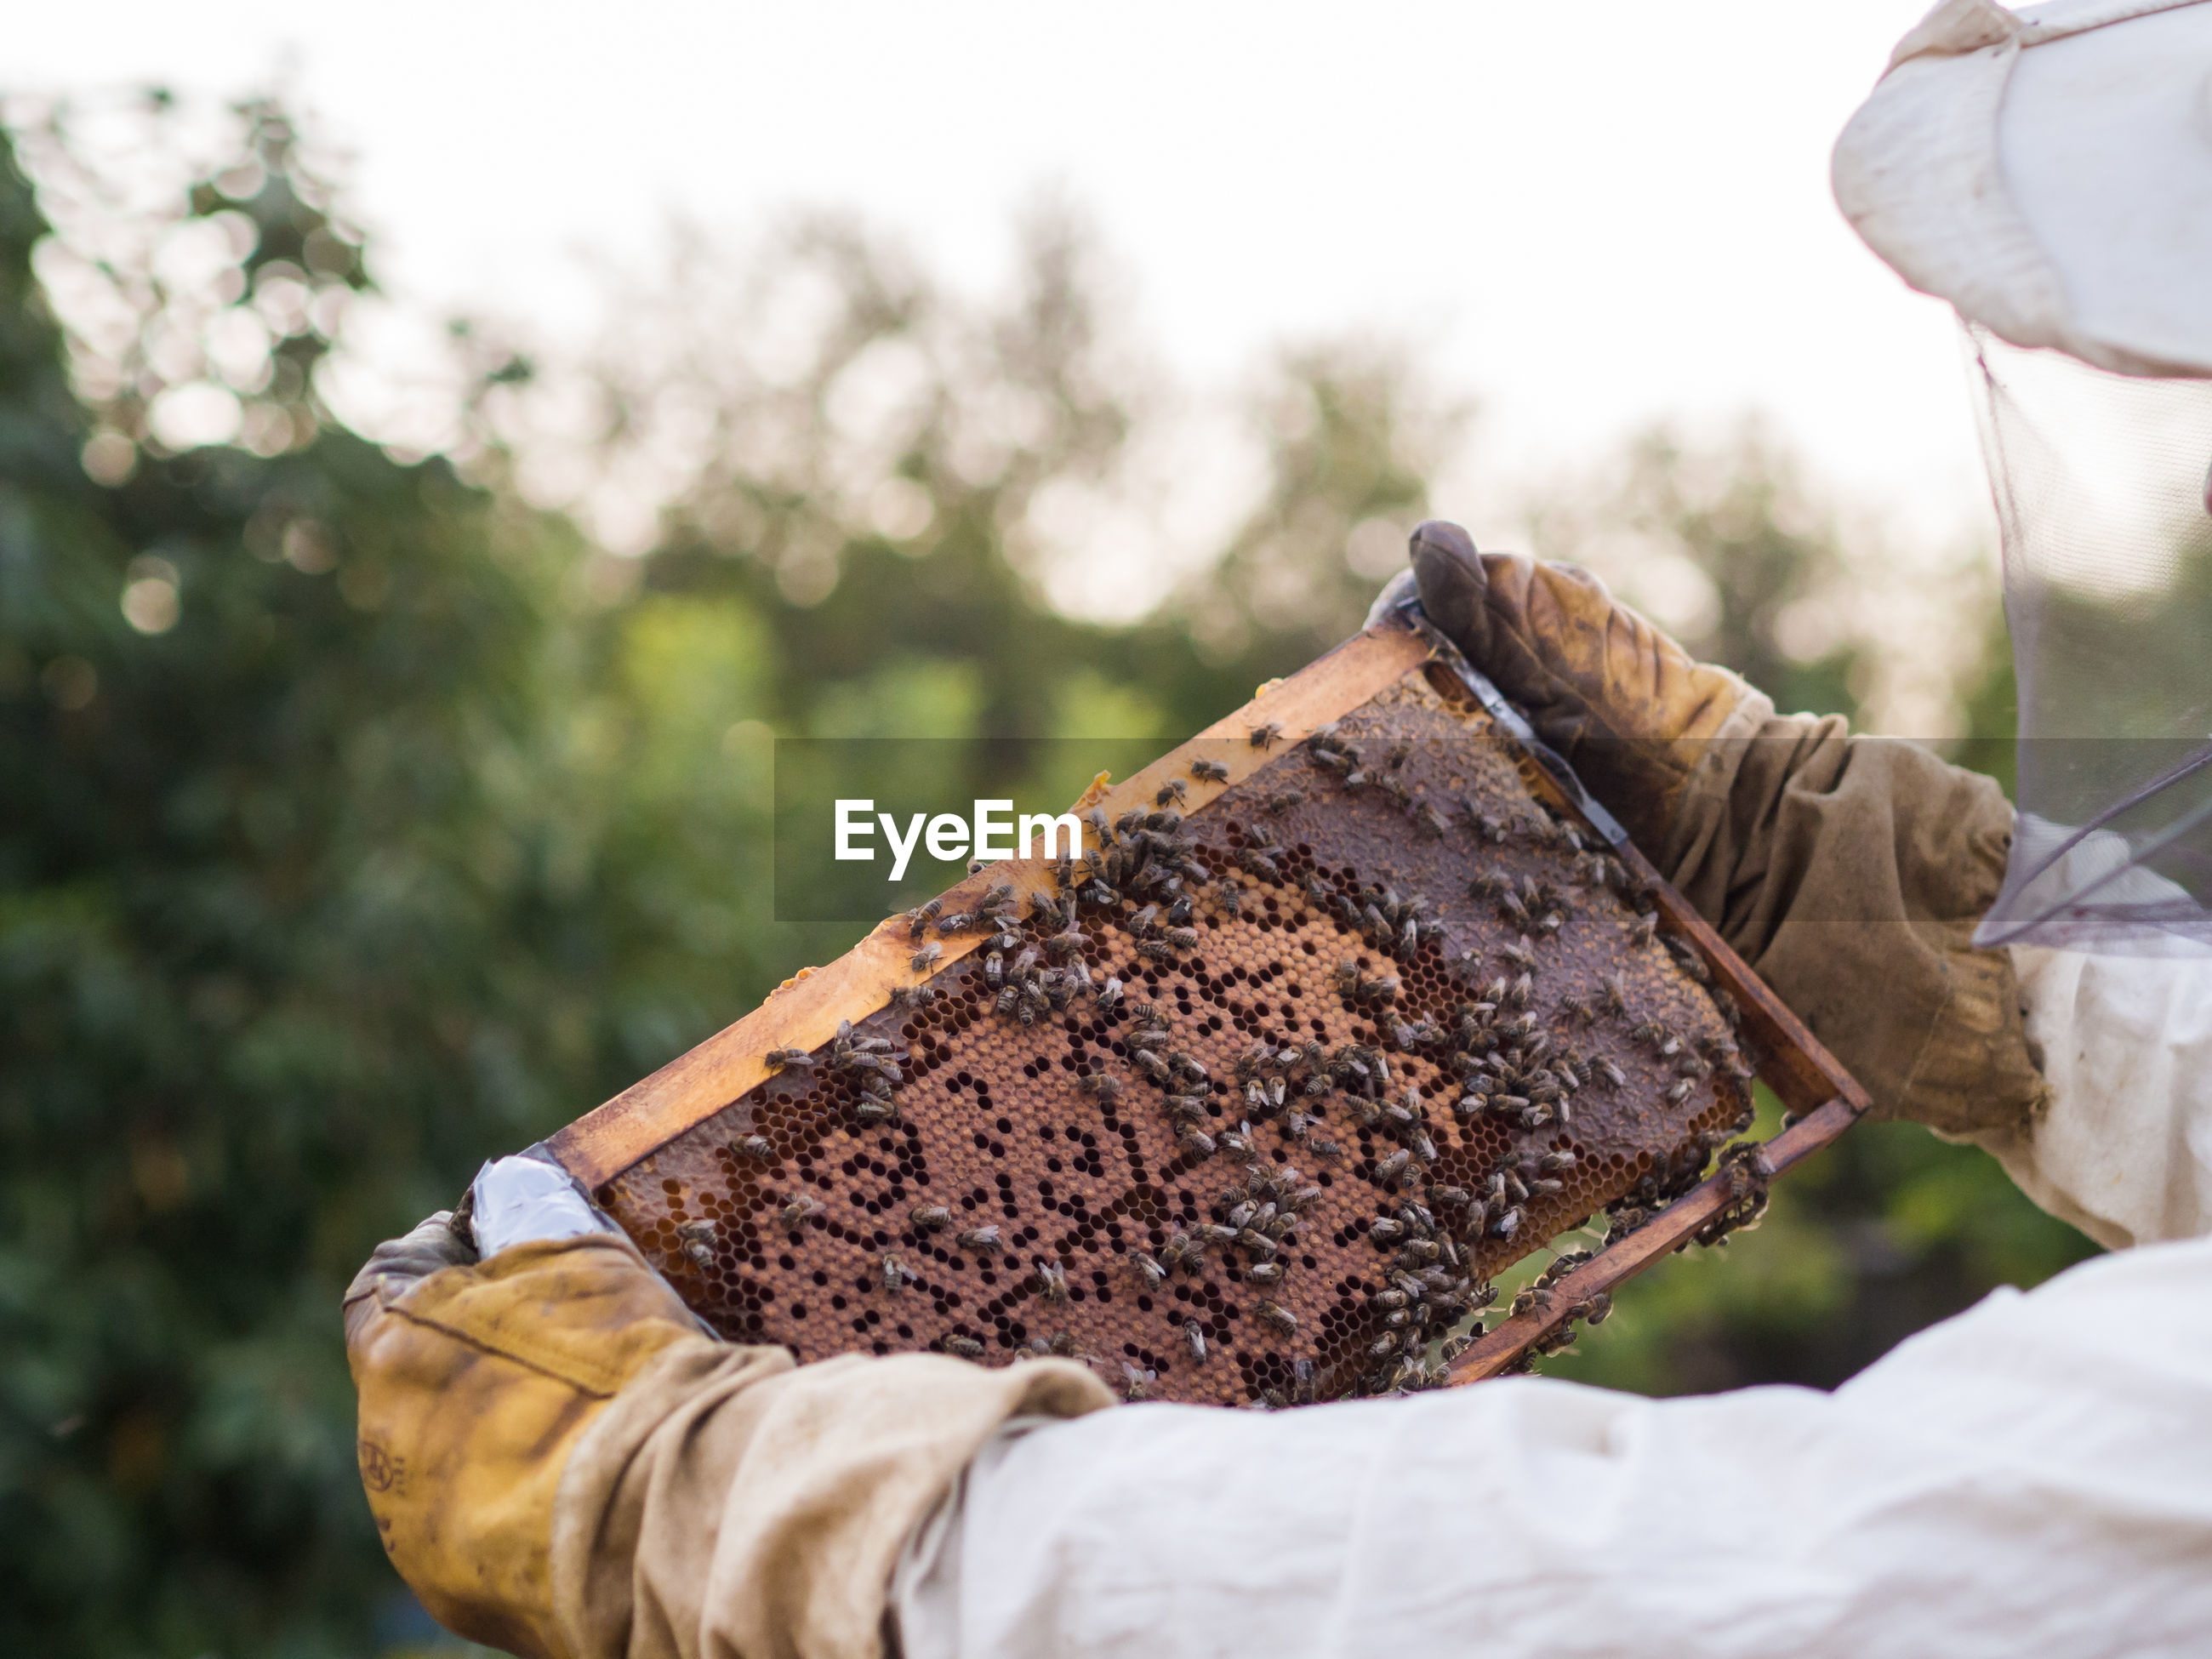 Cropped hands of beekeeper holding beehive